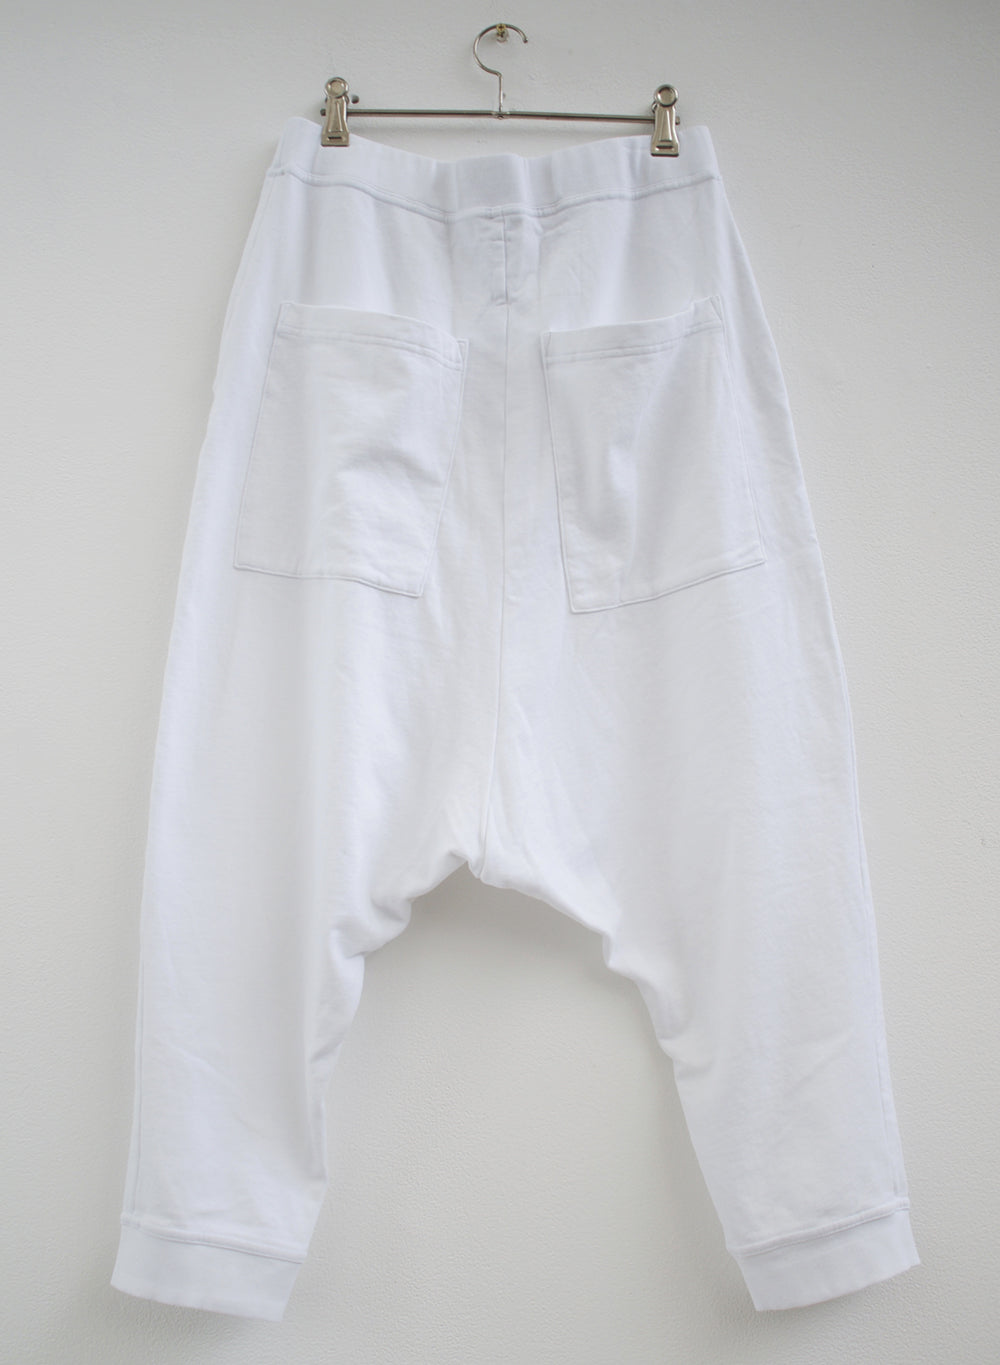 Rundholz White Cotton Stretch 3/4 Pant 3290109-999 back